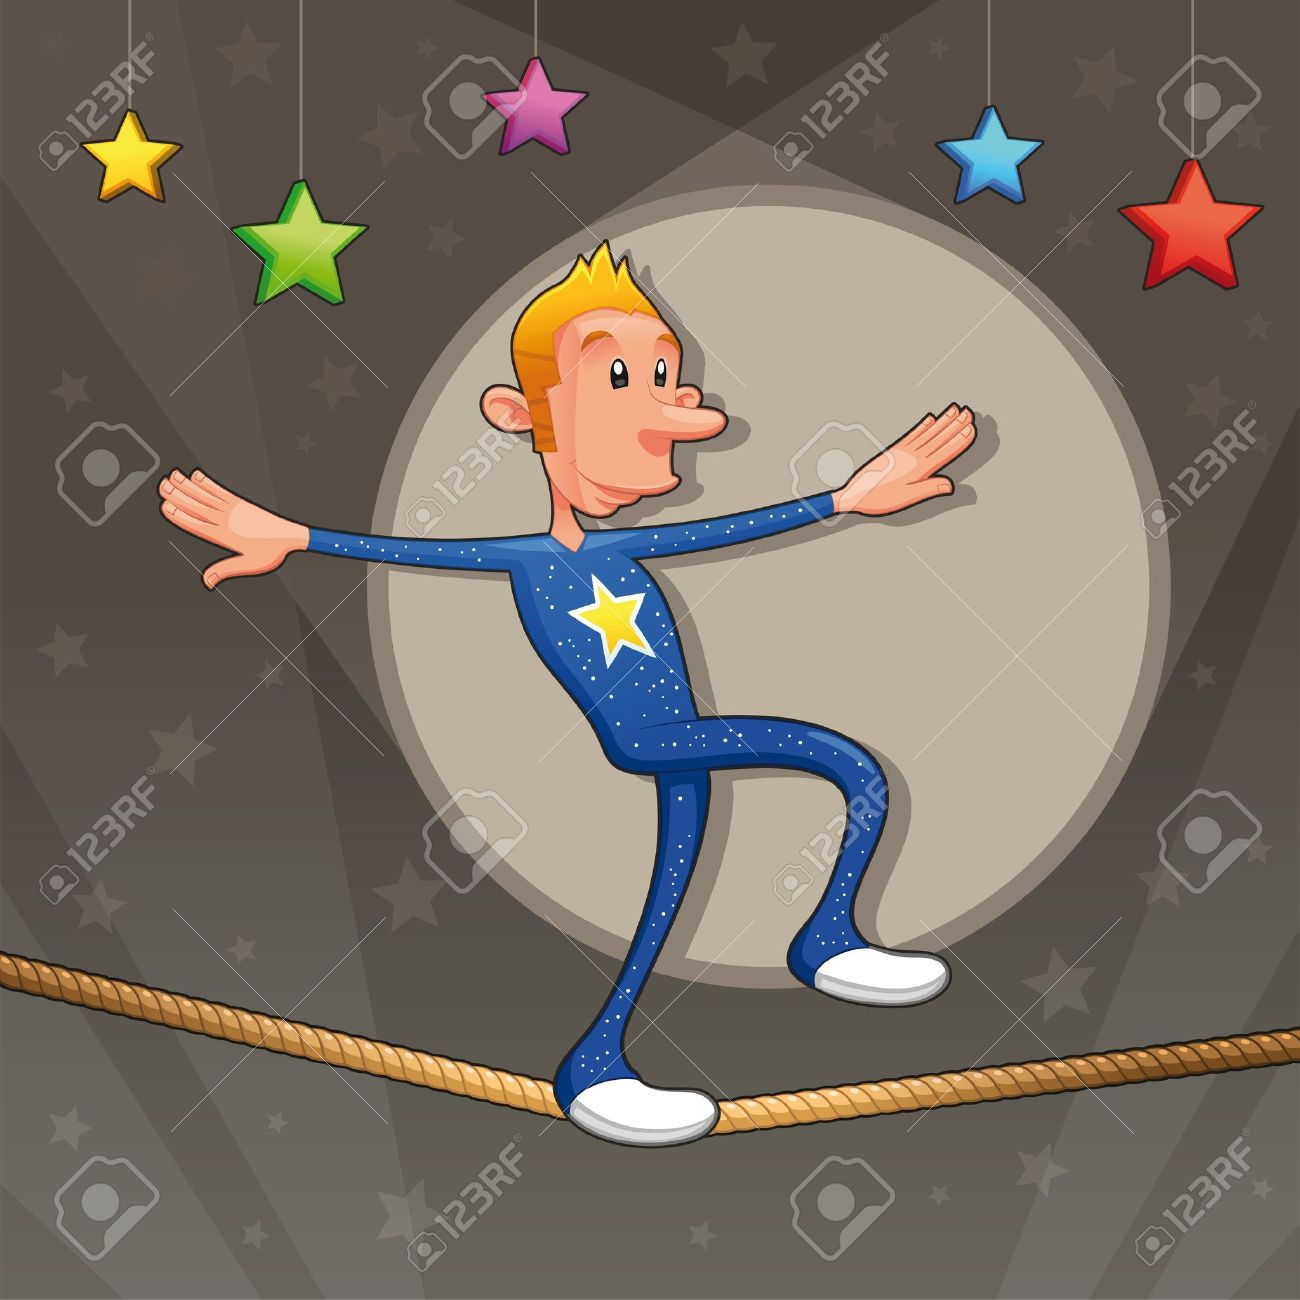 Funny equilibrist is walking on the tightrope. Cartoon and vector illustration. Stock Vector - 14893934